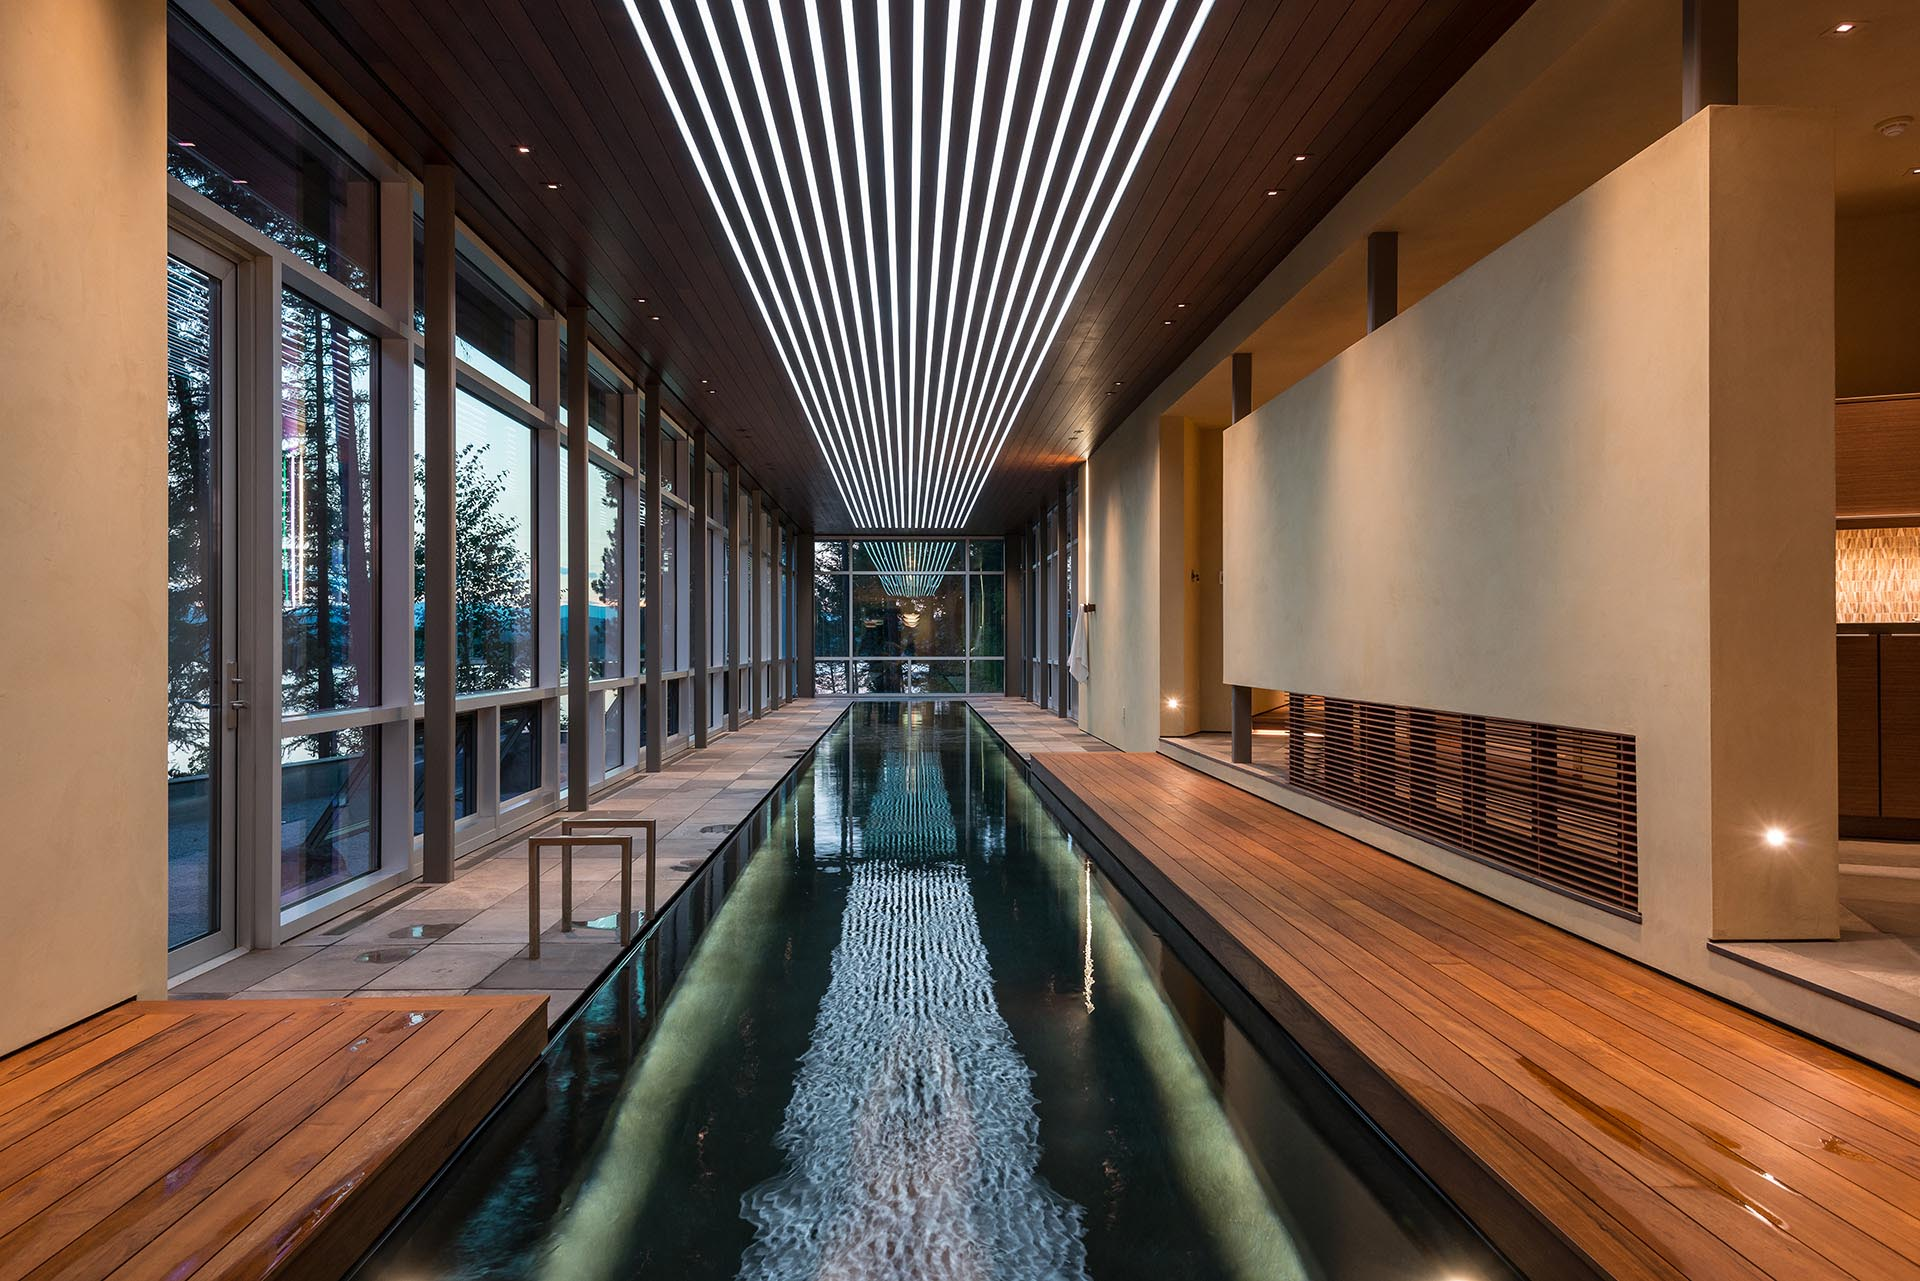 An indoor swimming pool with lighting integrated into the ceiling.